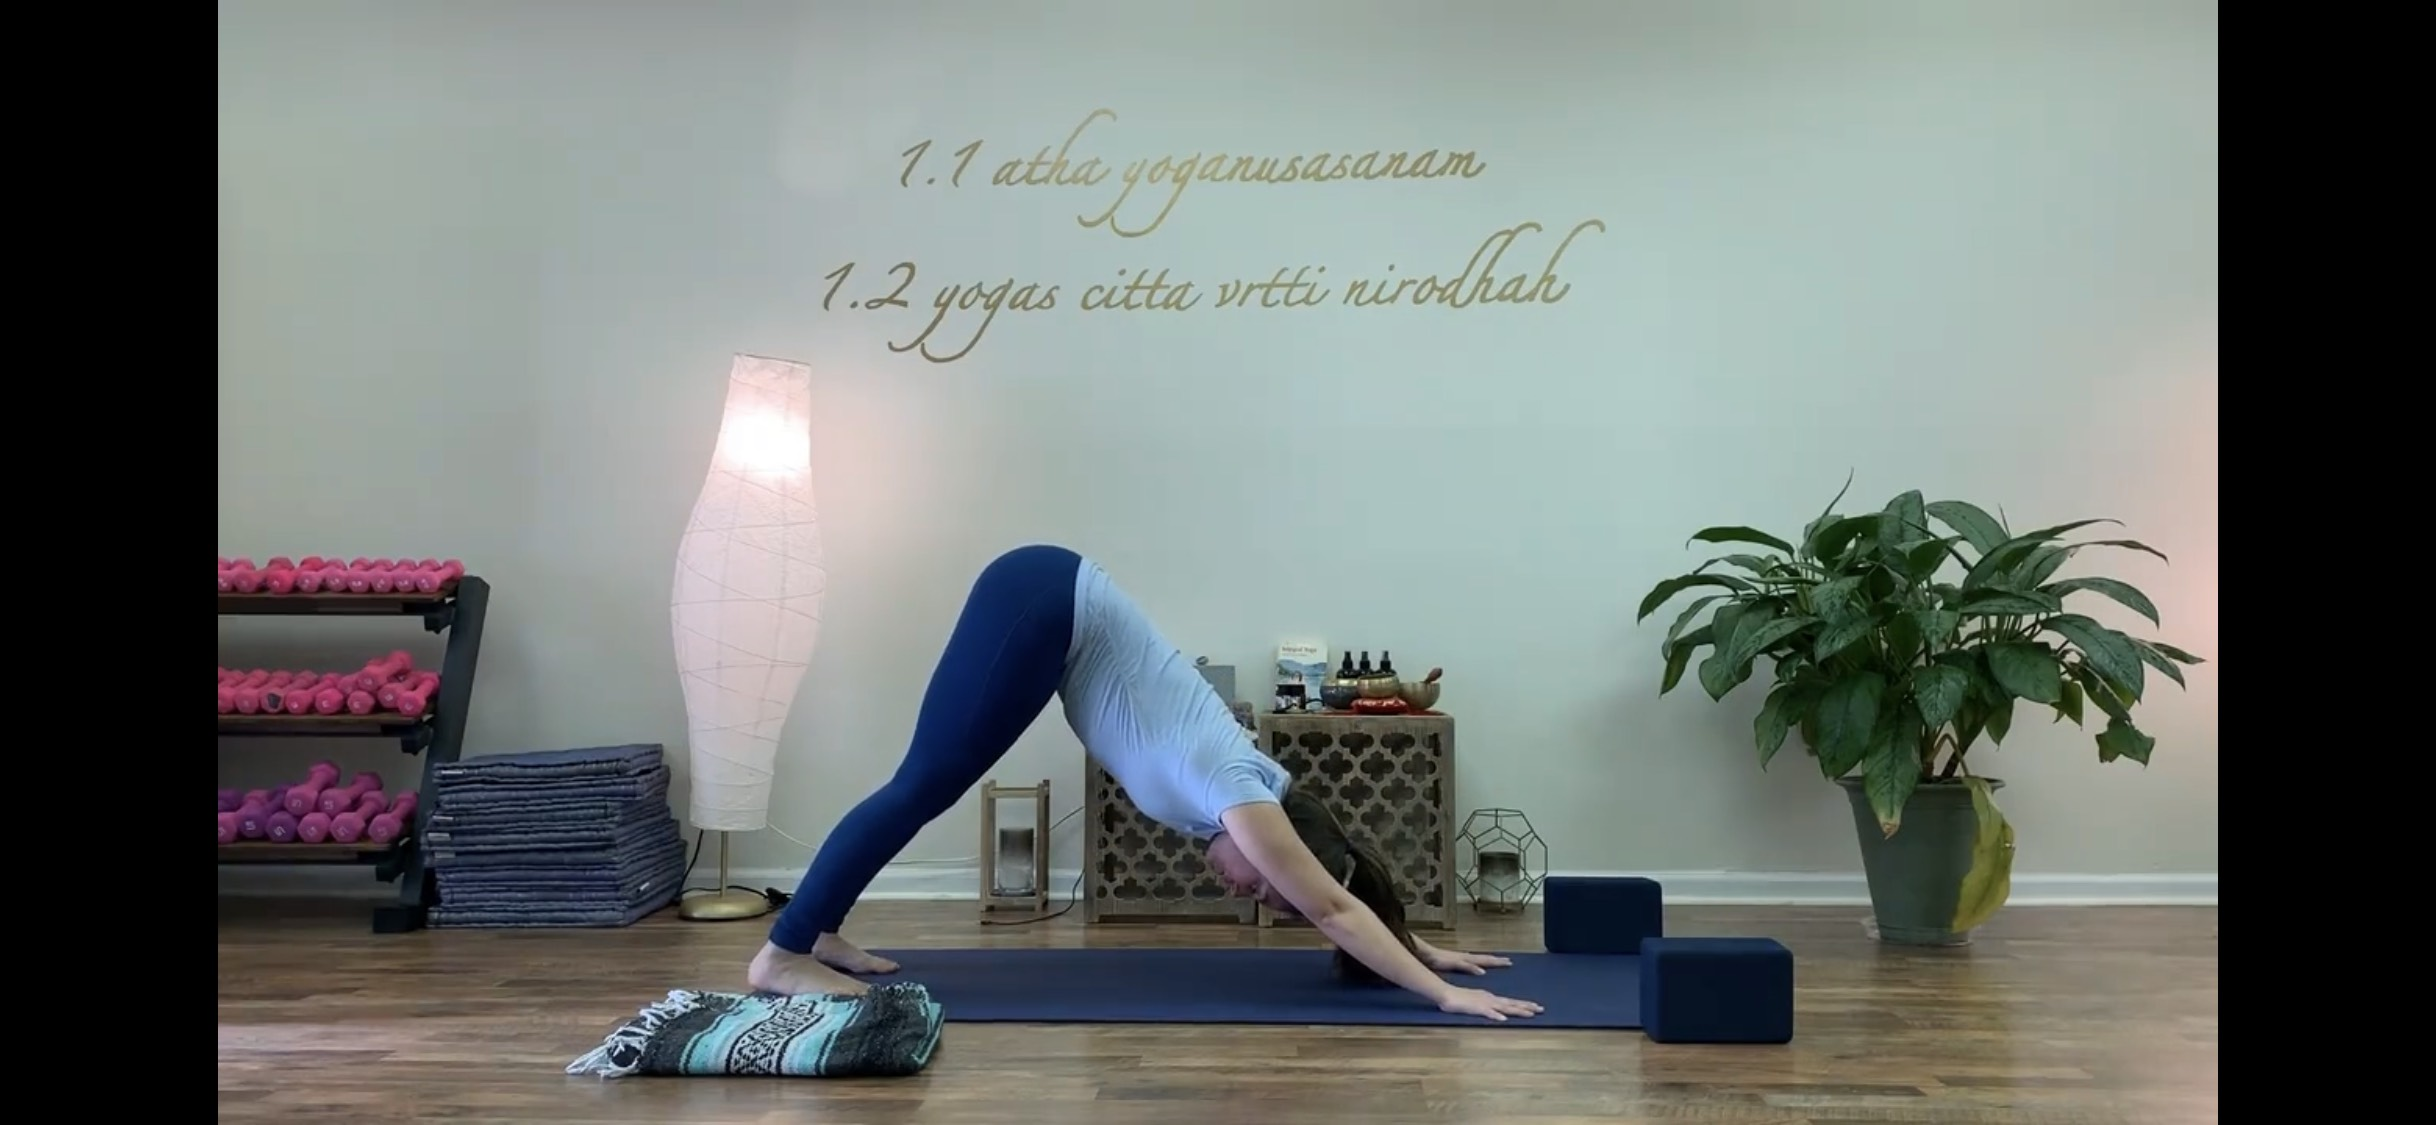 LIVE classes with instructor support - Get that studio feeling, at home! Monthly live classes where you'll connect with an online community of yogis just like you. Q&A with Amy after every class.